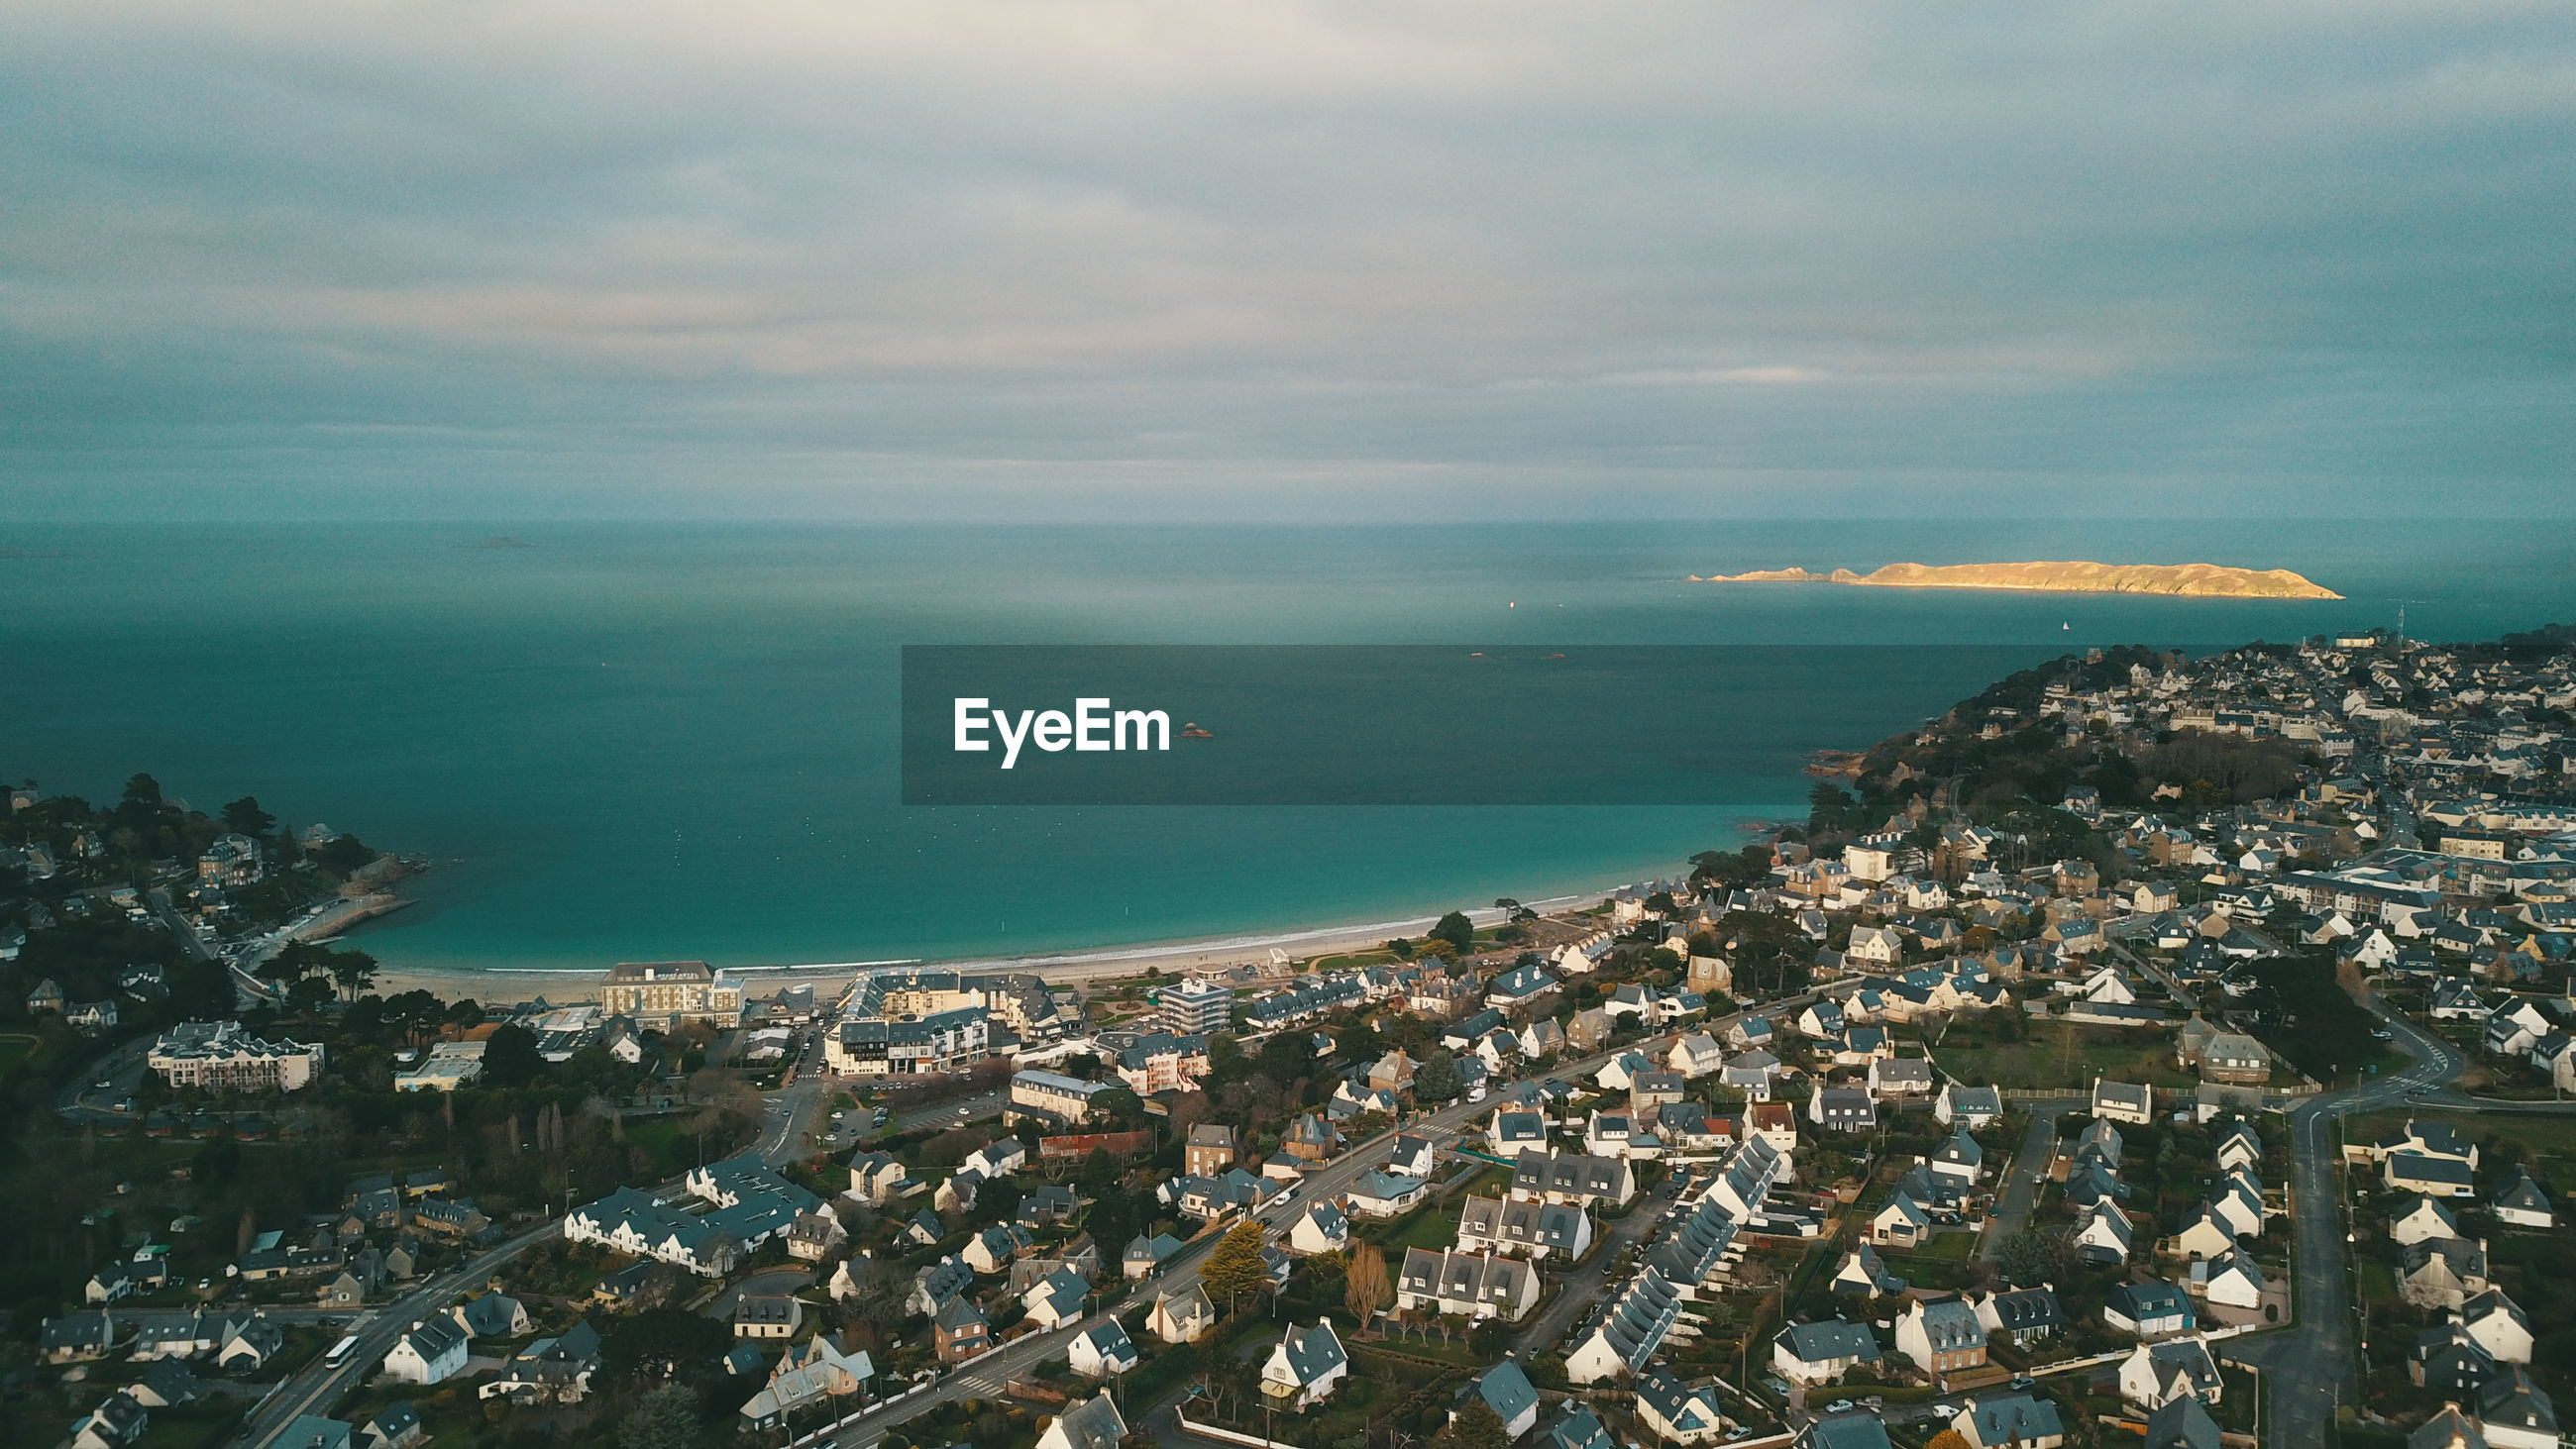 architecture, sea, building exterior, water, built structure, sky, city, cityscape, building, horizon, horizon over water, nature, cloud - sky, high angle view, residential district, no people, aerial view, day, outdoors, townscape, settlement